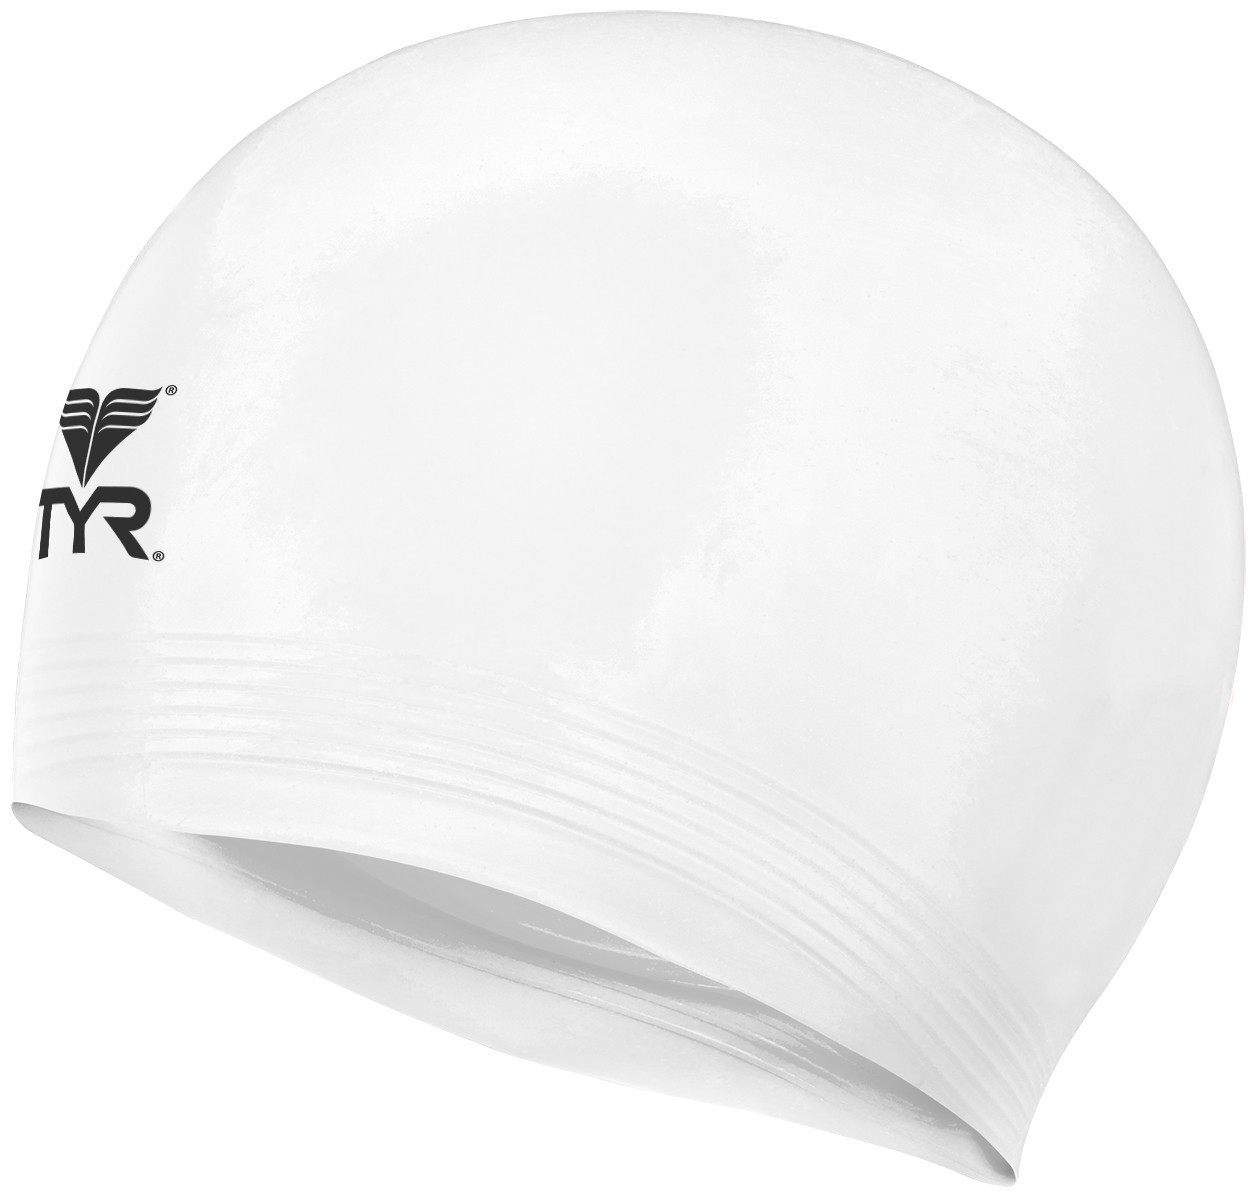 TYR Latex Swim Caps